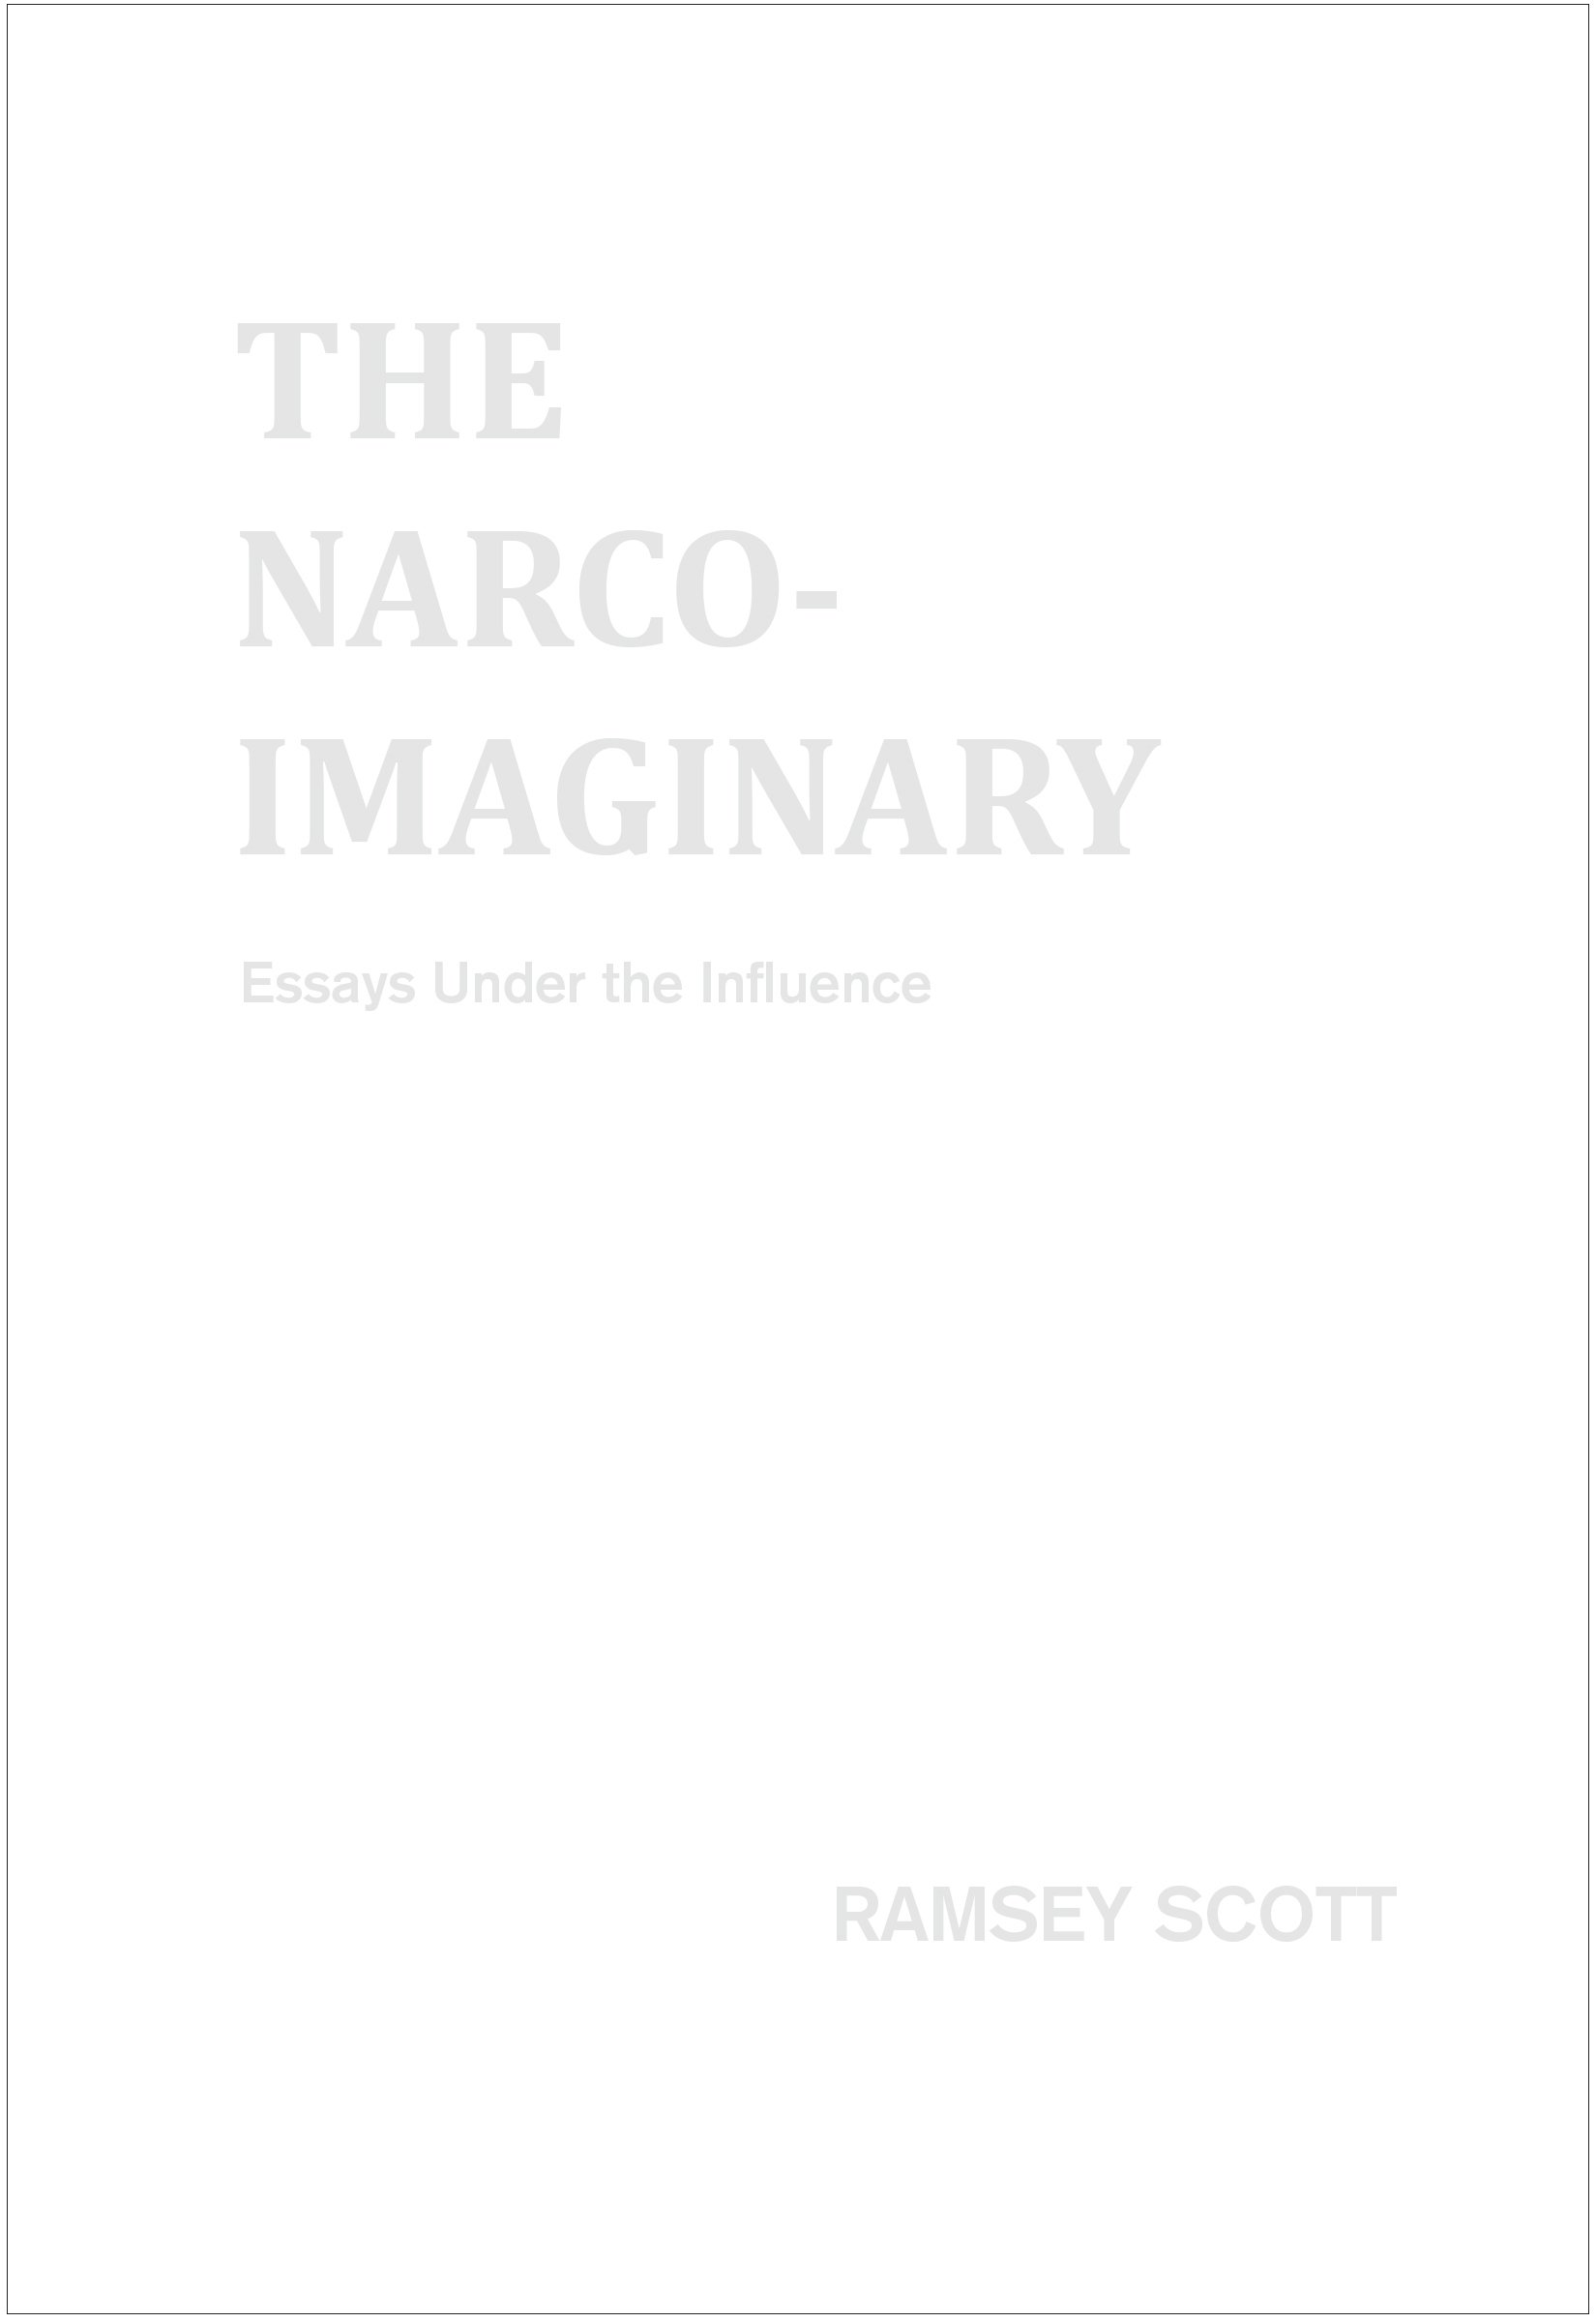 narco imaginary essays under influence ramsey scott amazon com  narco imaginary essays under influence ramsey scott amazon com au books